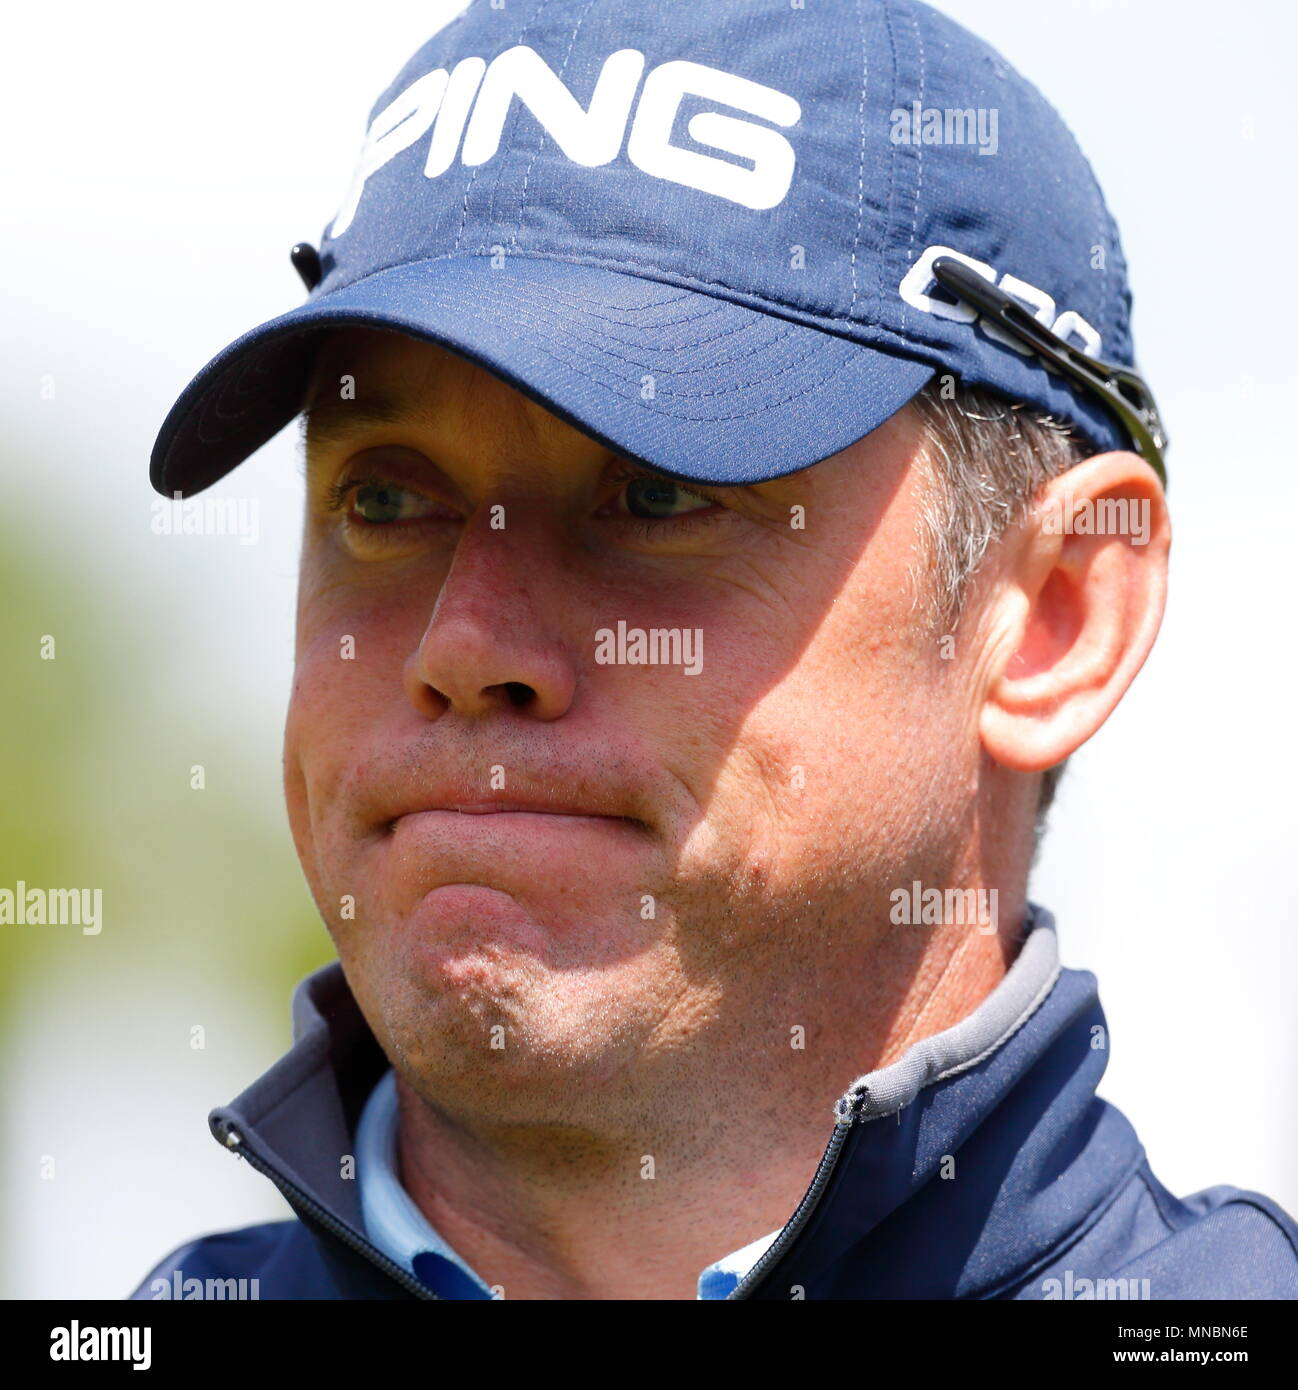 Lee Westwood on the finishes par for the course on the 18th green during the first round of the BMW PGA Championship European tour at Wentworth Golf Club. 21 May 2015 - Stock Image